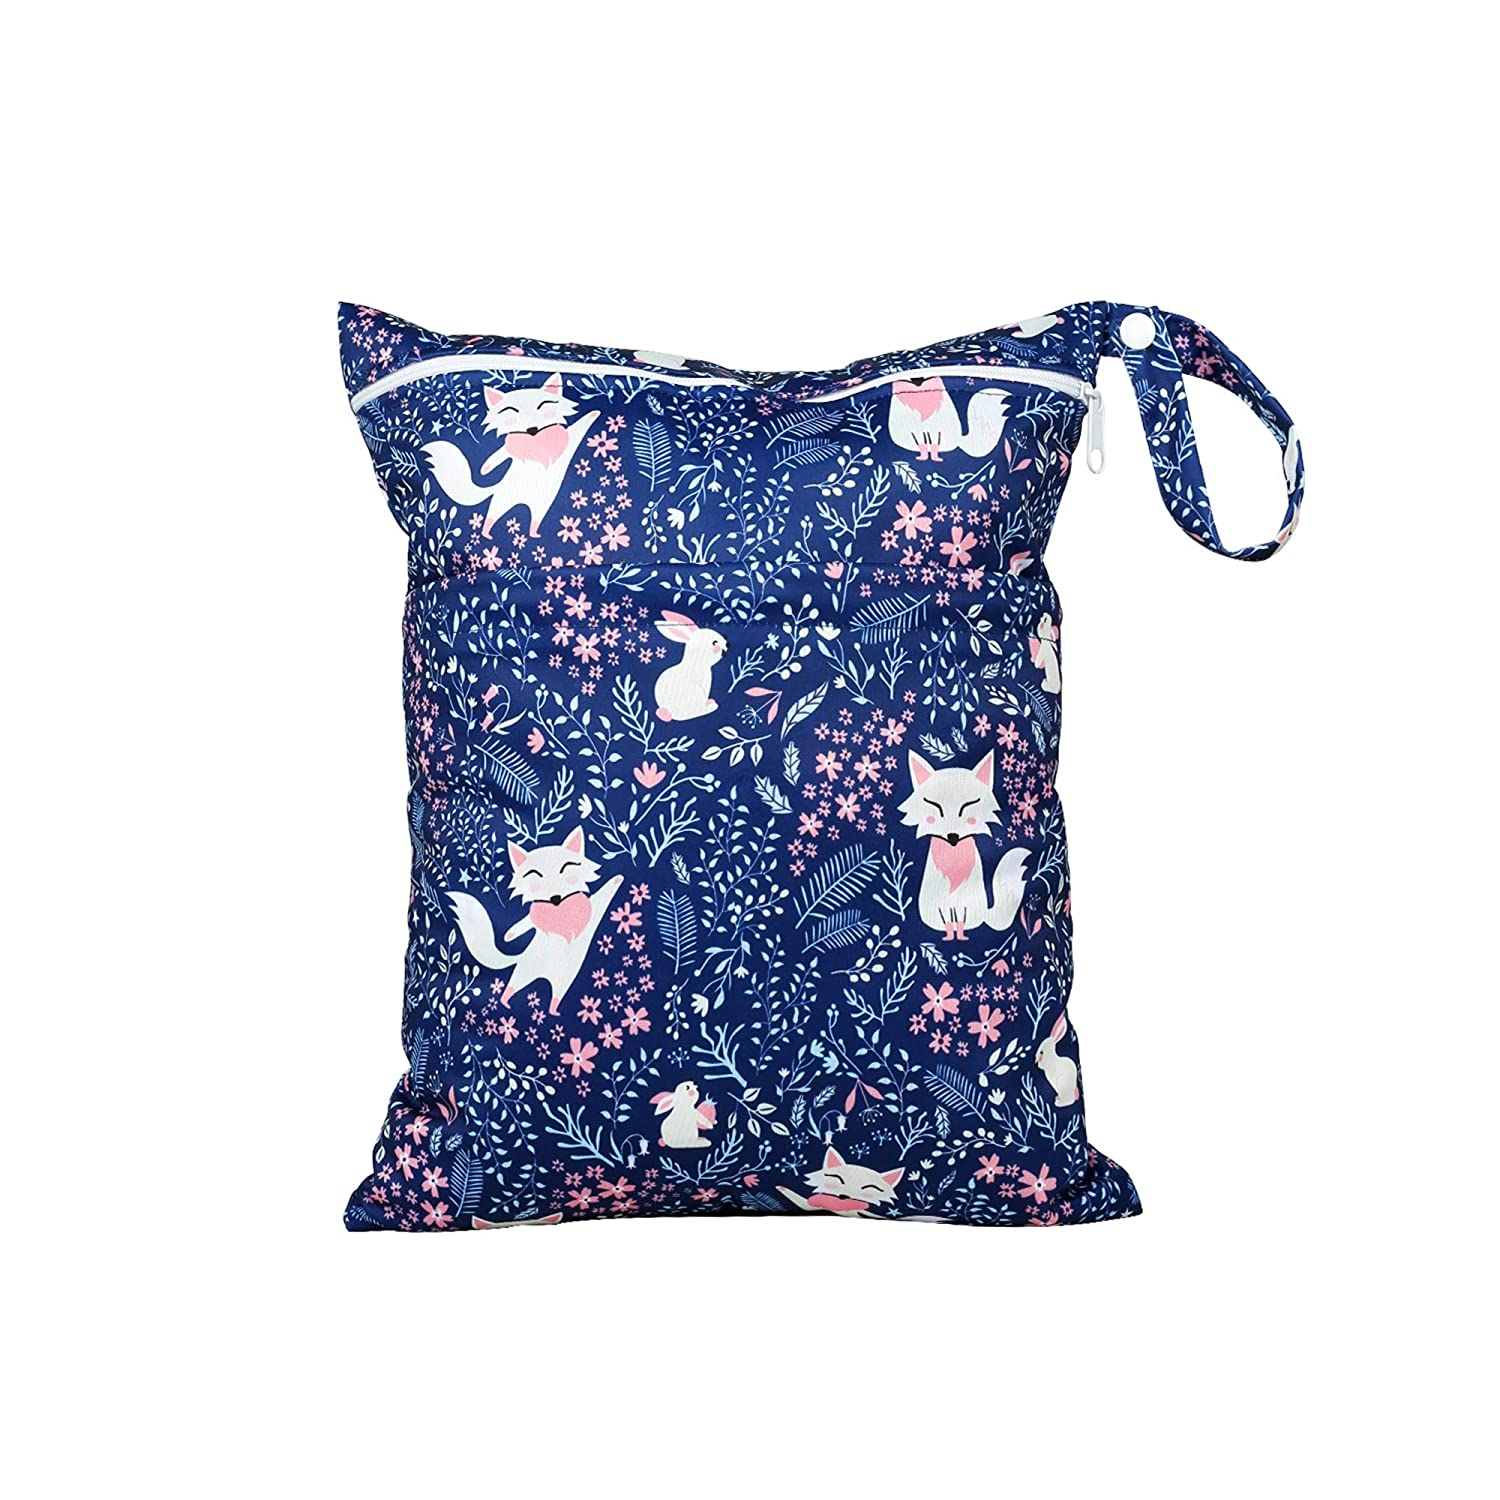 Wet Bag for Cloth Diapers Waterproof Reusable Bags with Two Zippered Pockets Cat Wet Dry Bag Travel Beach Pool Yoga Gym Bag for Pump Swimsuits Wet Clothes 1 pc